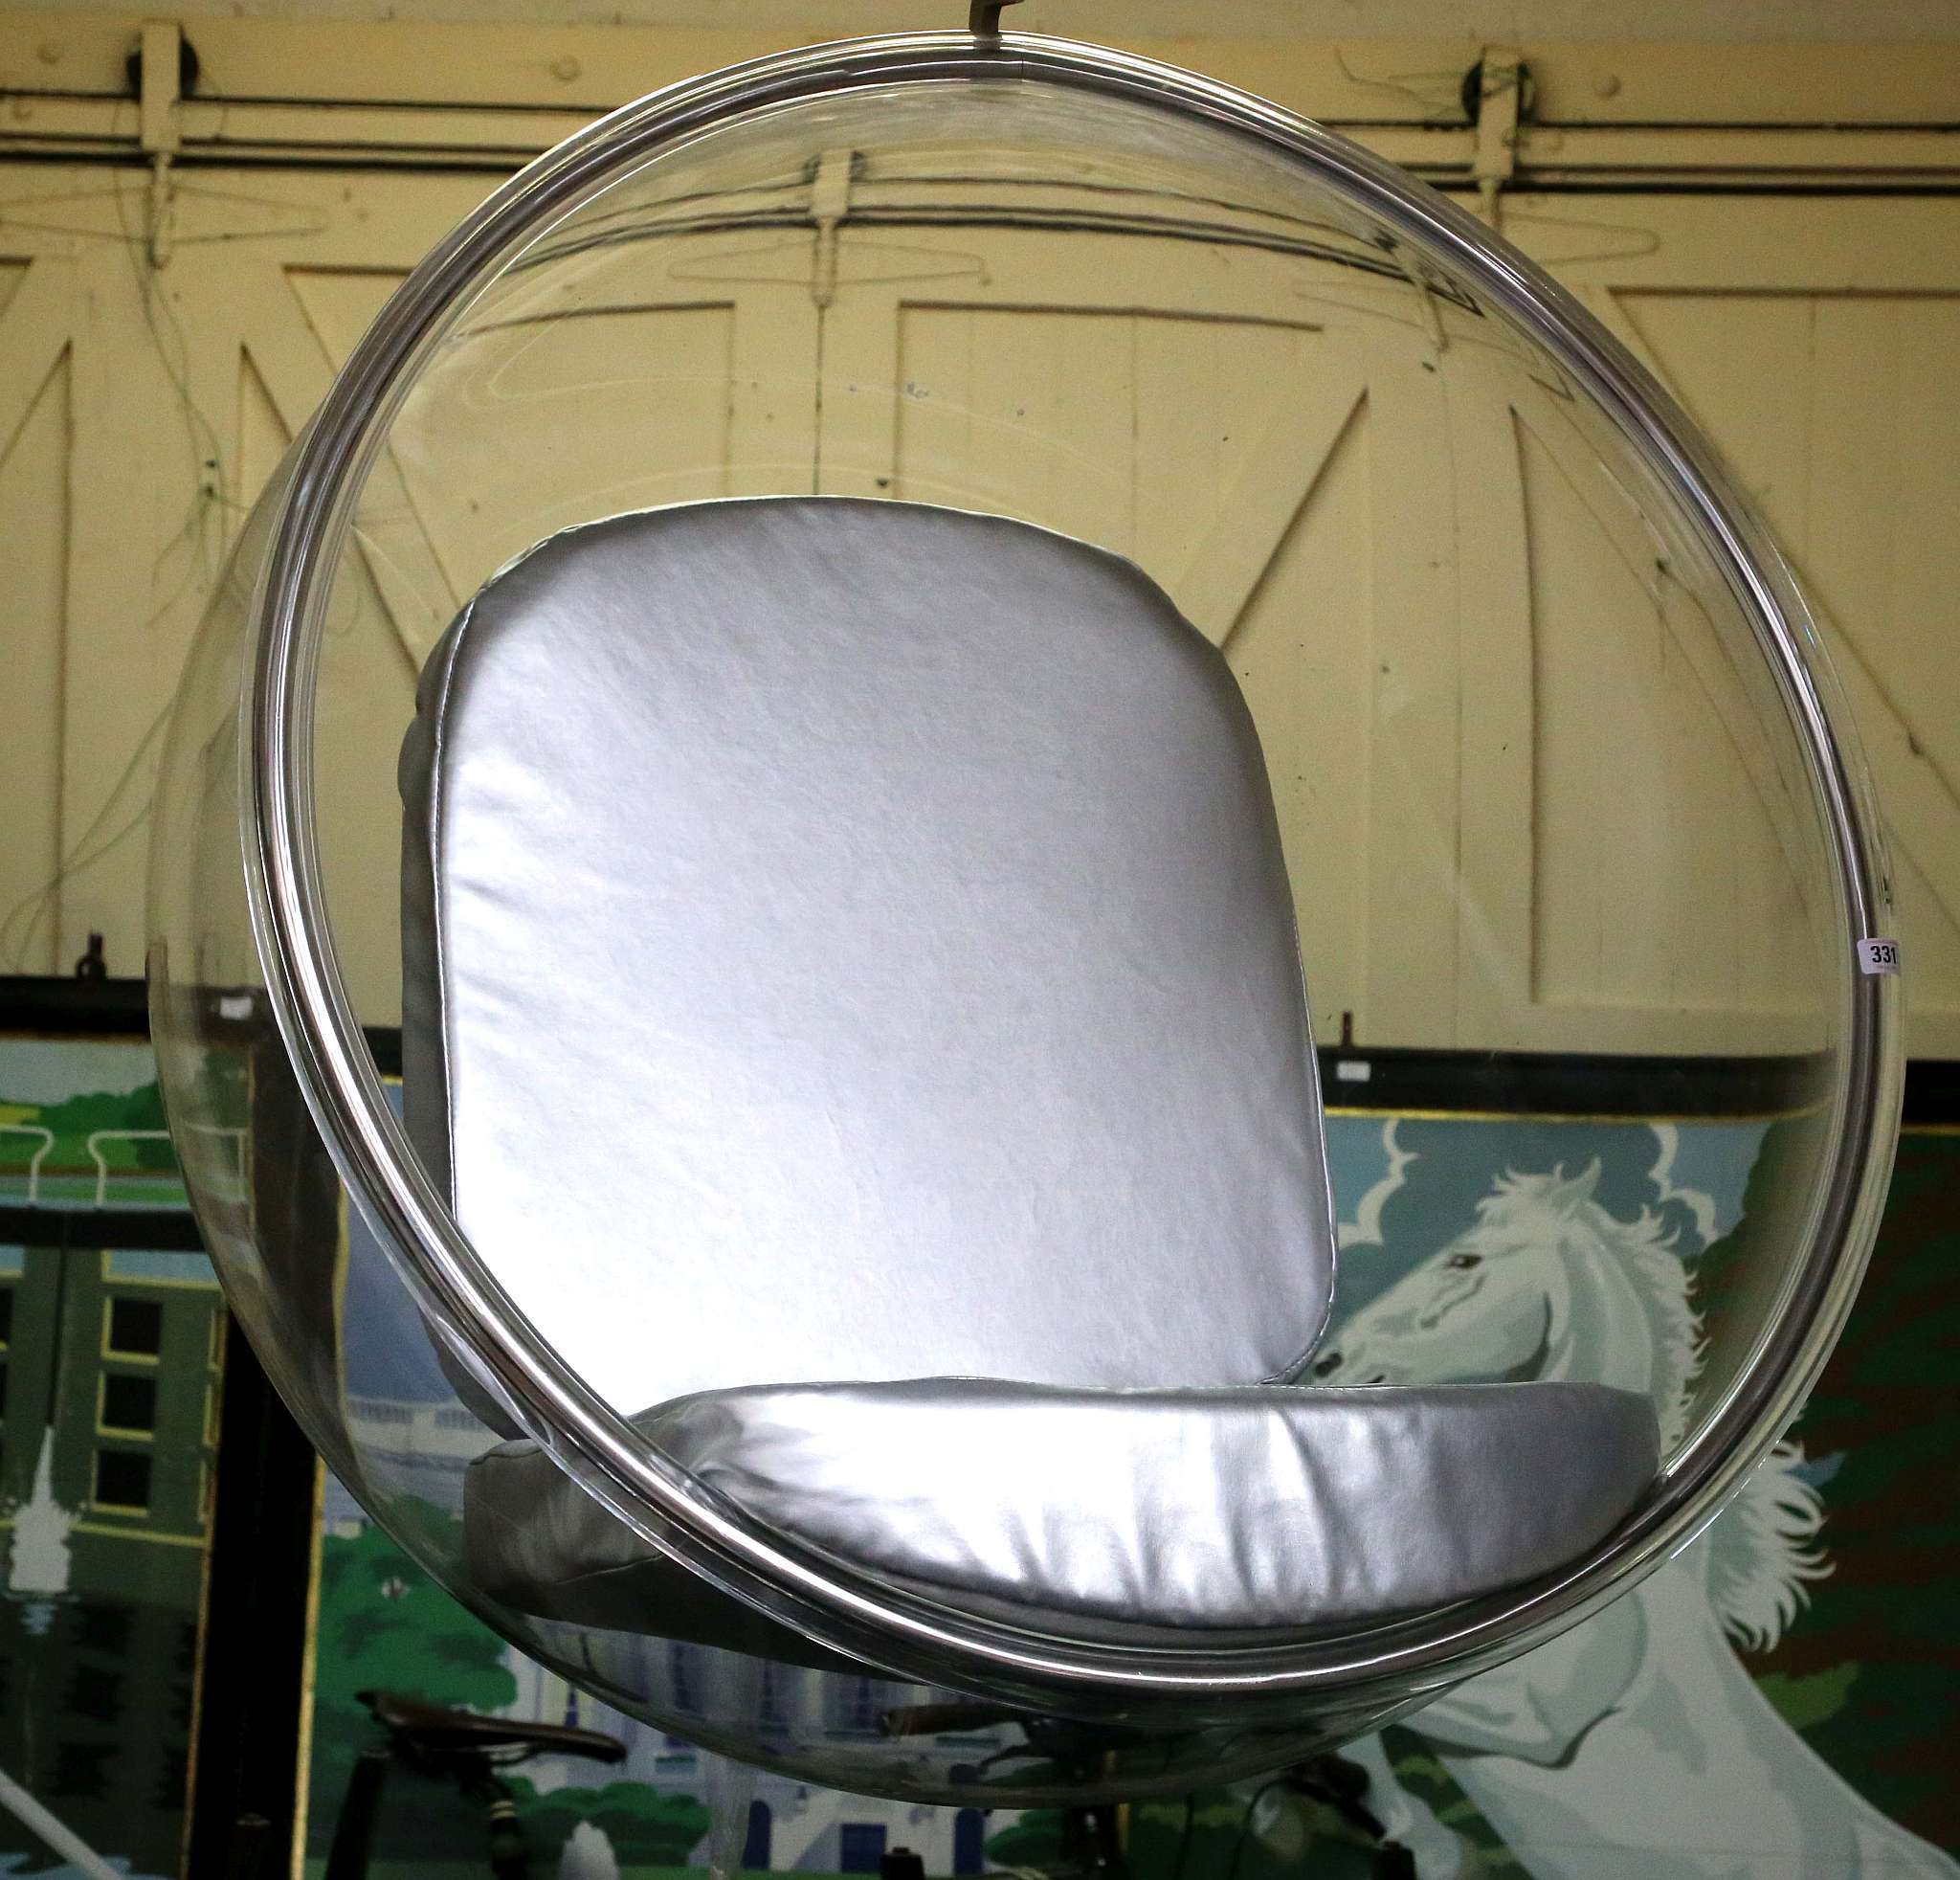 An Eero Sarrinen style hanging ball chair perspex with silver